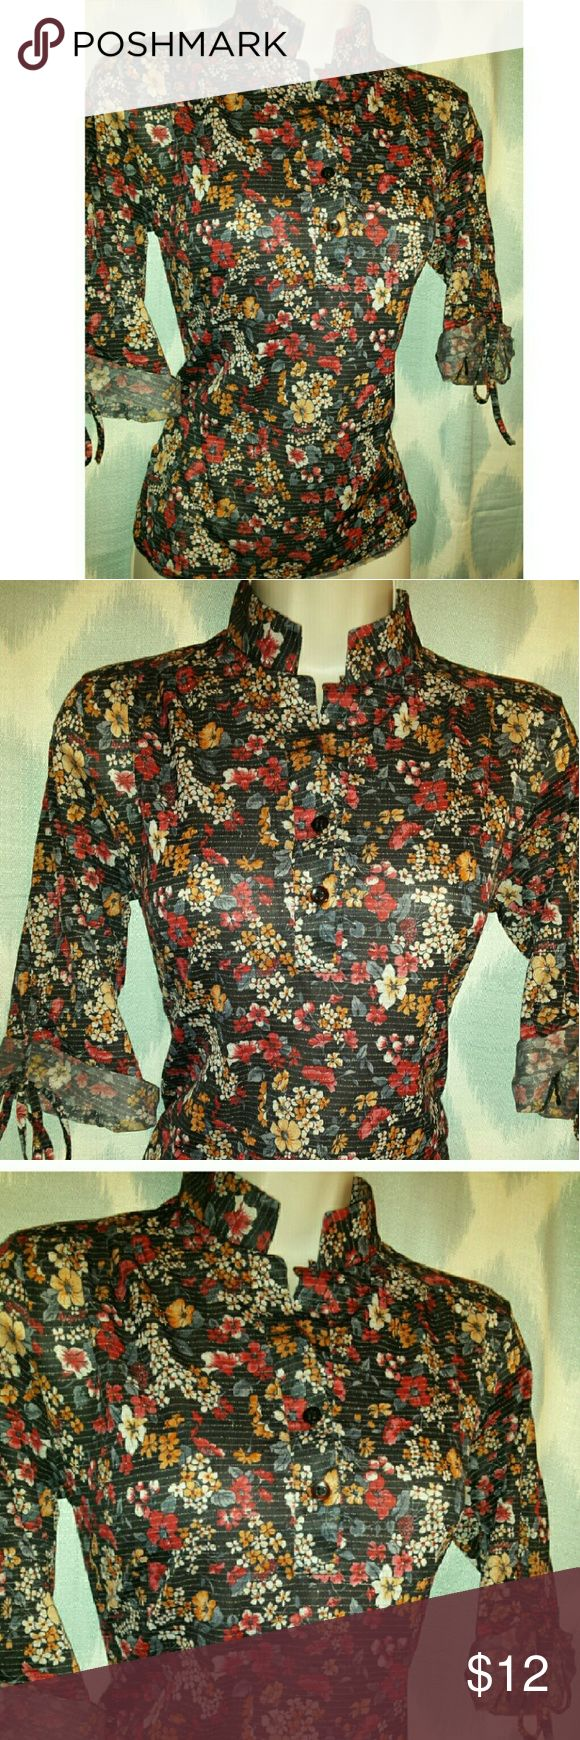 "Just Arrived retro black floral metallic blouse Pretty button front, 3/4 sleeve retro/ vtg top. Excellent condition.  Chest 17"" Length 24"" Vintage Tops"